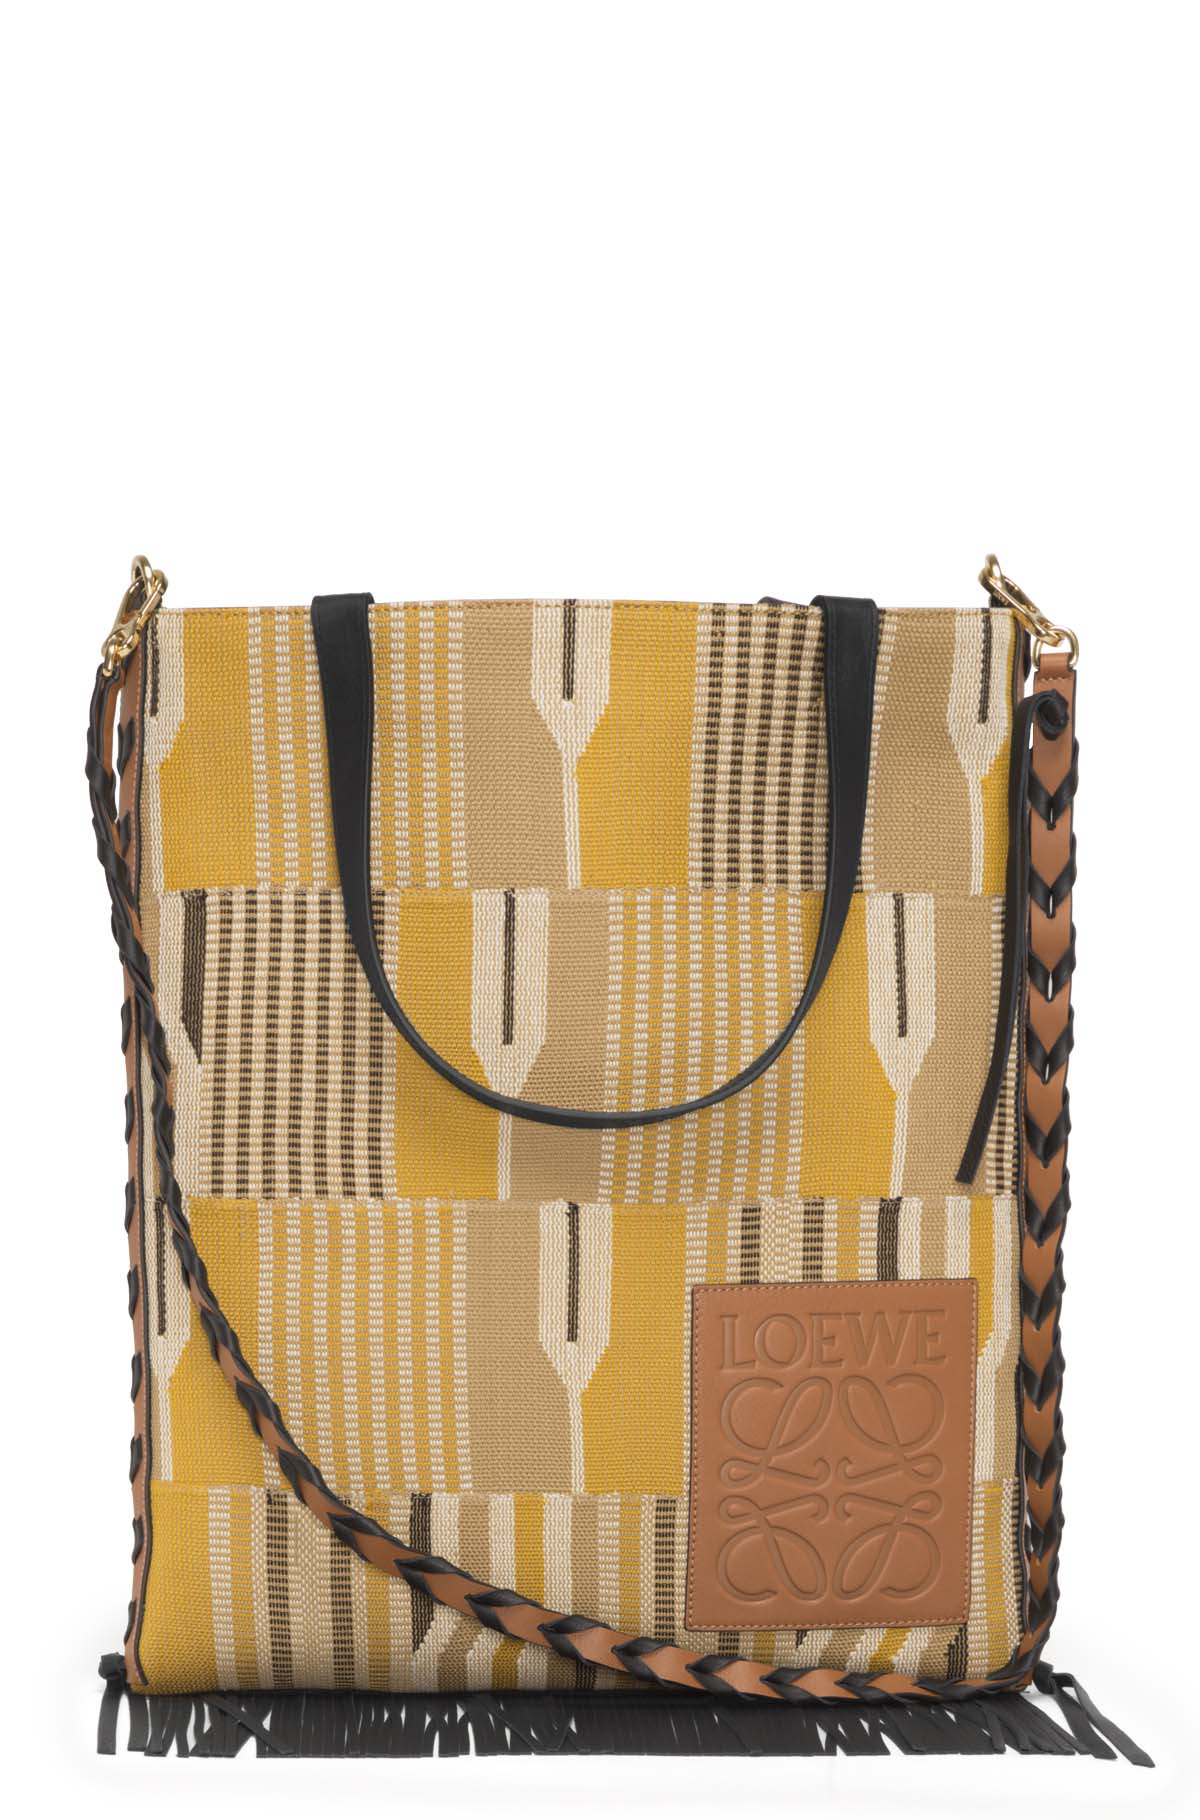 LOEWE Bolso Vertical Tote Geometrico Ocre/Negro front